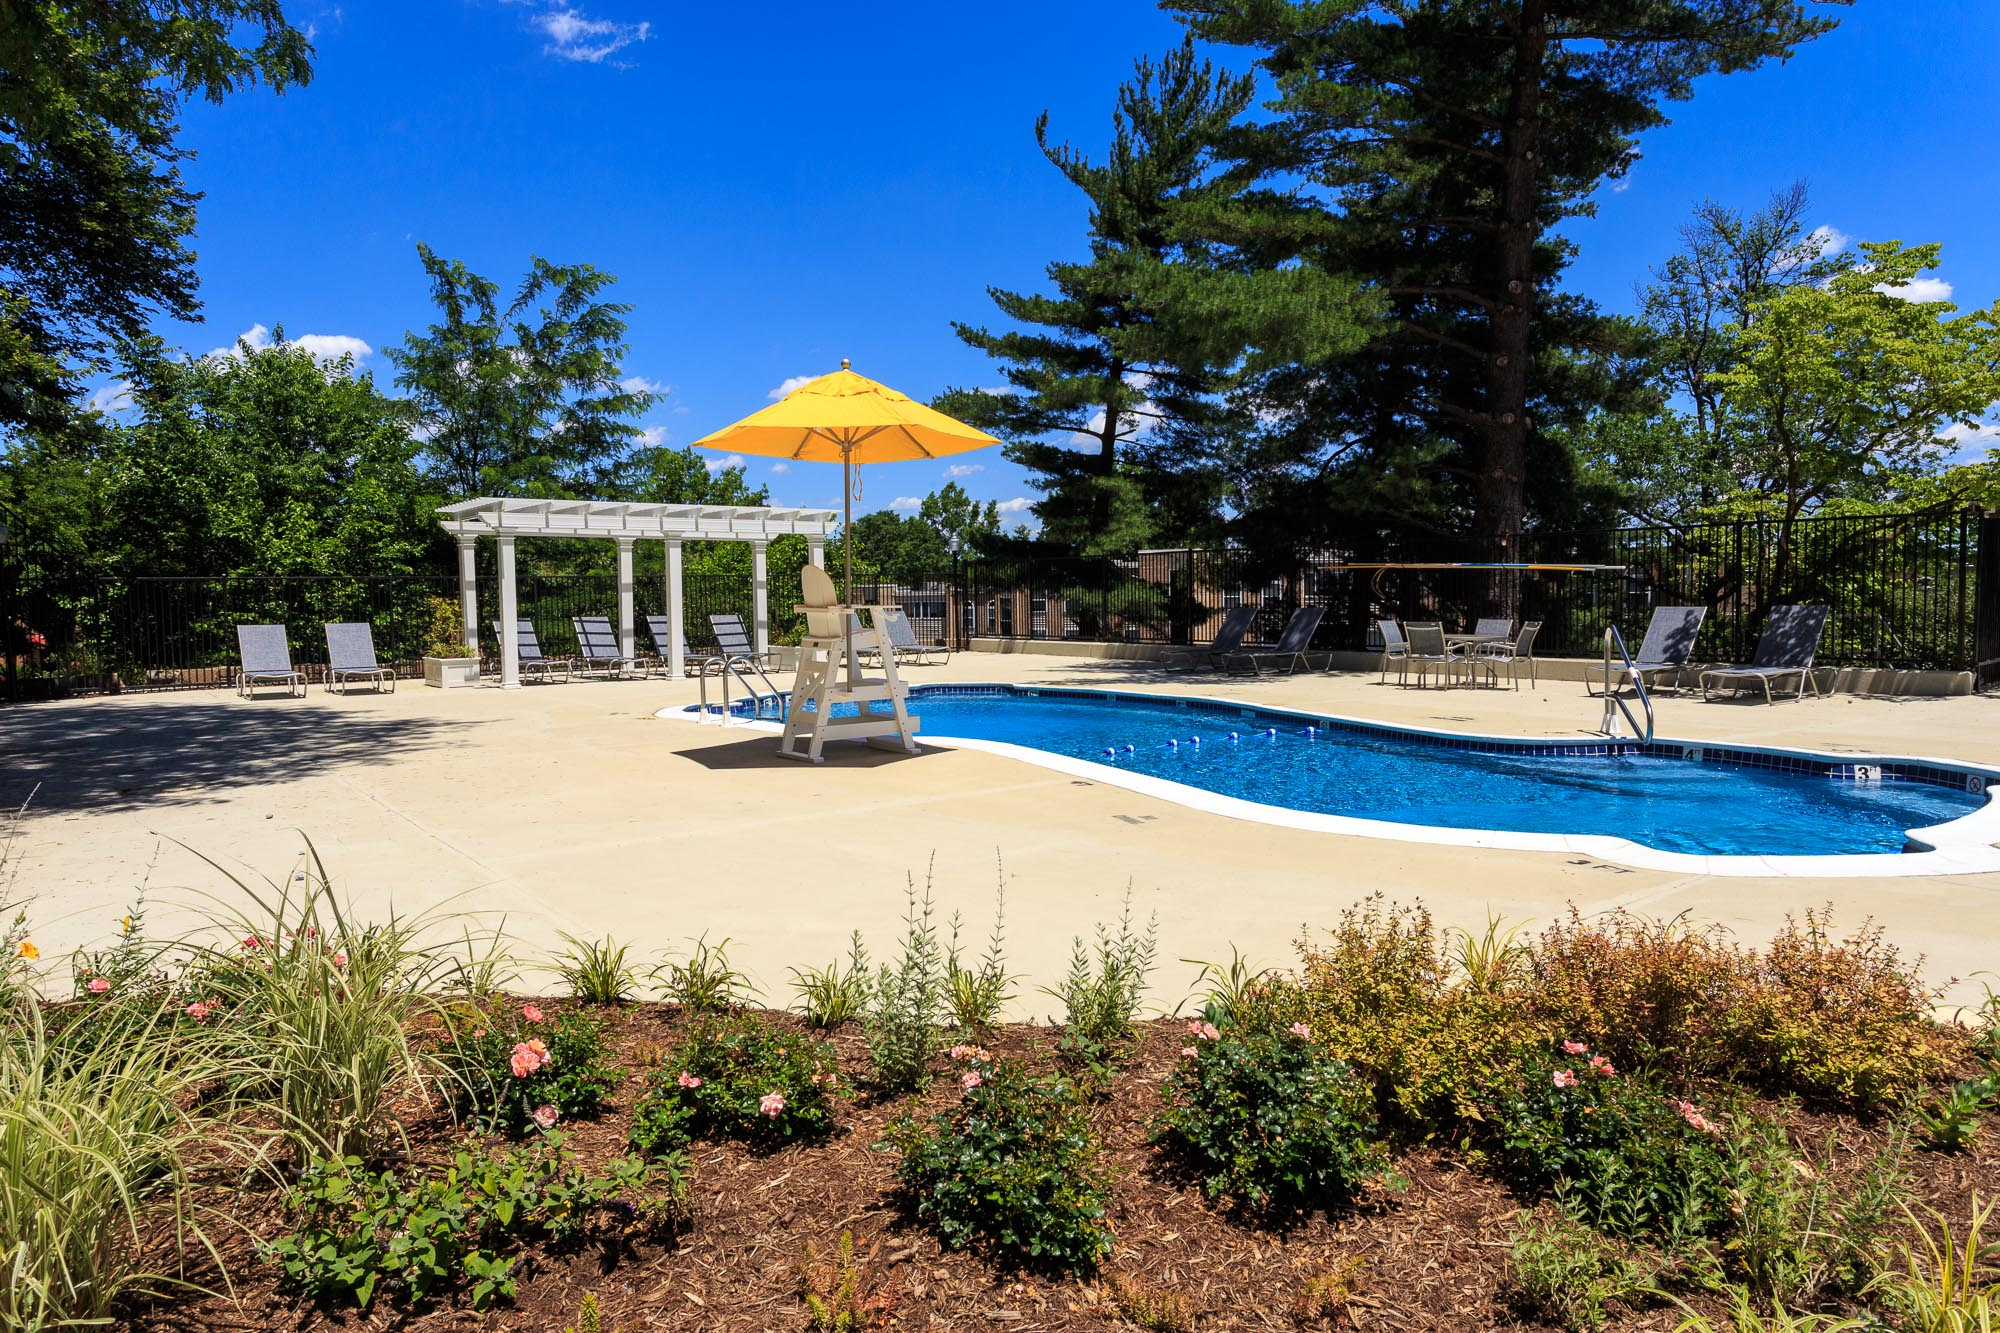 Vista_Pool_June_2017_CMC-8638